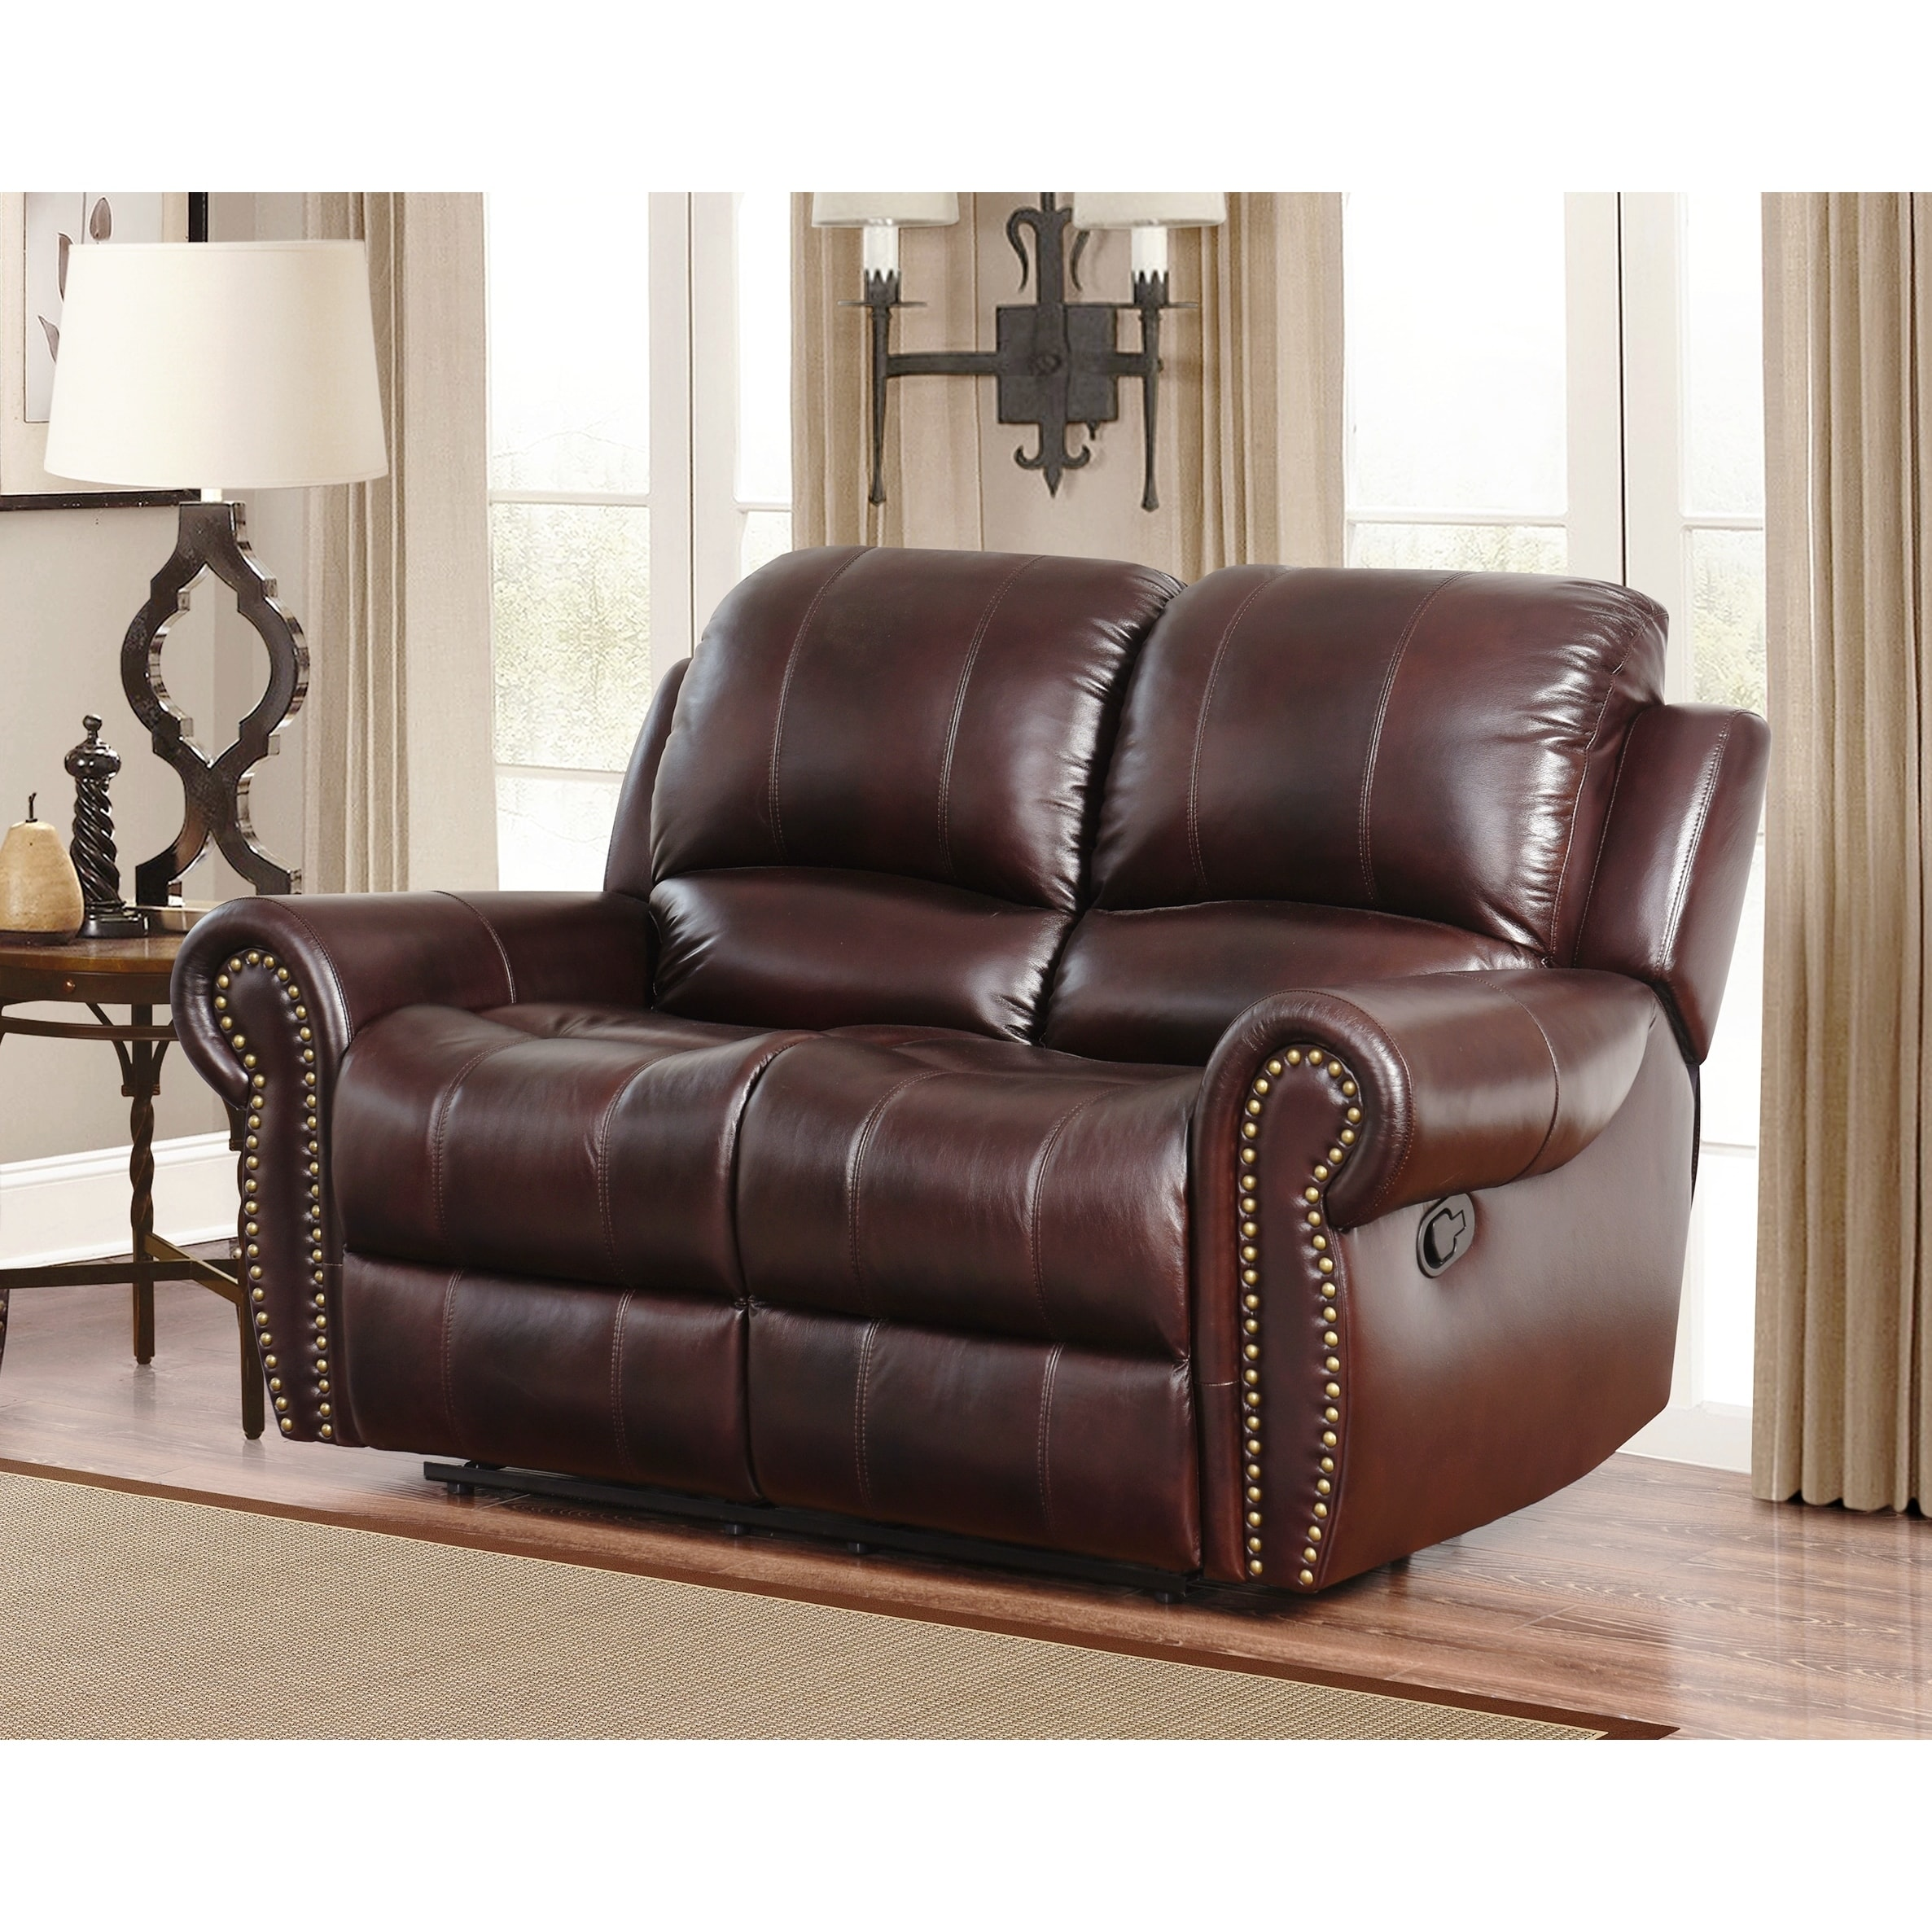 Abbyson Living Broadway Premium Top Grain Leather Reclining Sofa And Loveseat